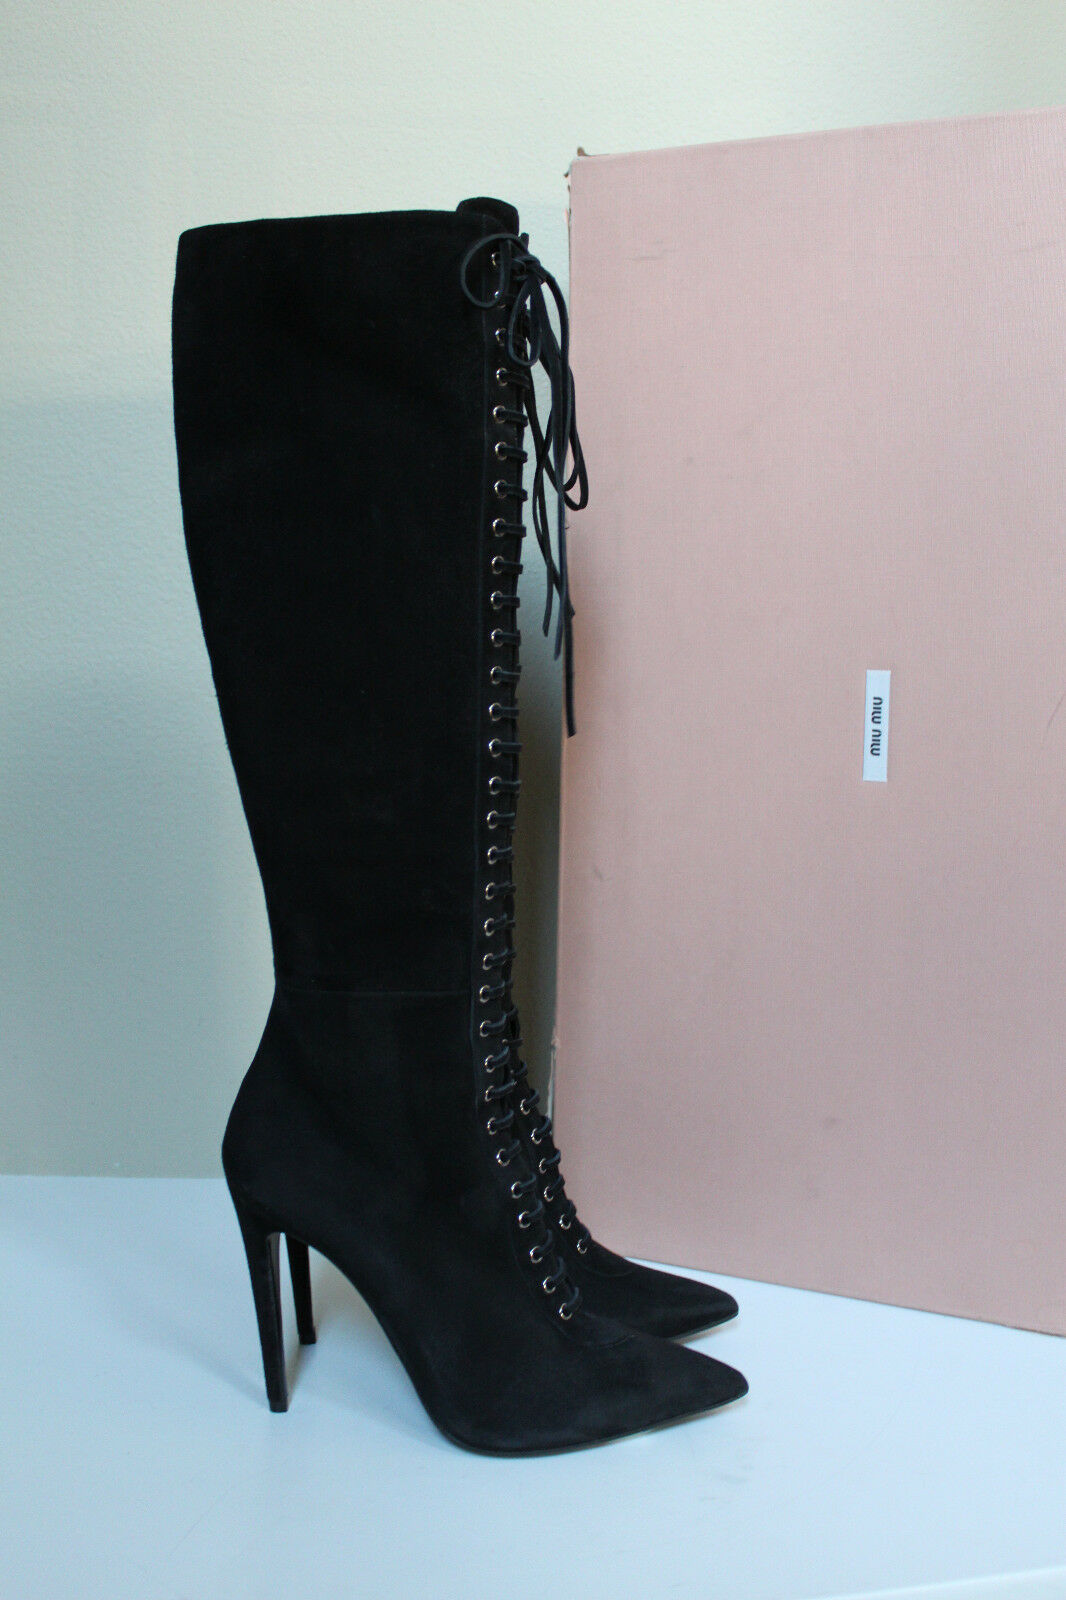 New sz 9   9.5 9.5 9.5 Miu Miu Black Suede Pointed toe Lace Up Tall Boot Heel shoes 97b15a